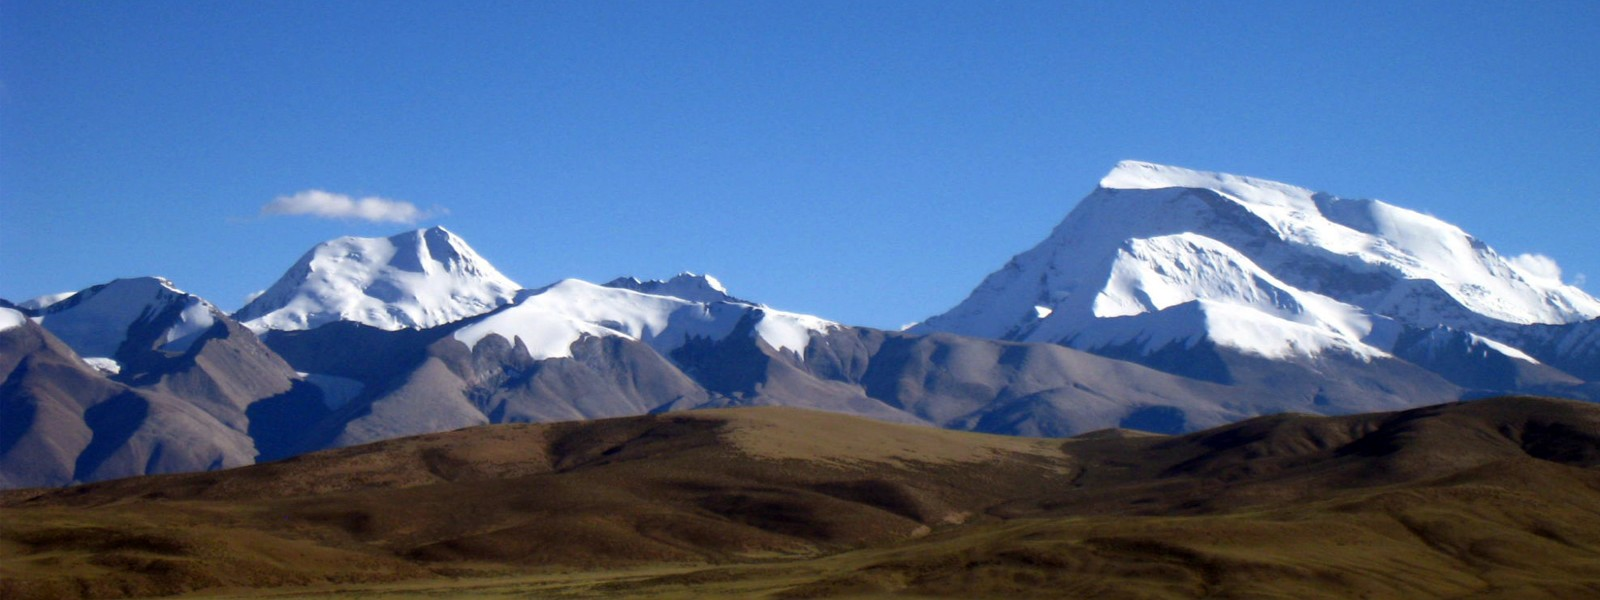 Tibet Gurla Mandata Expedition (Namo Nyani)